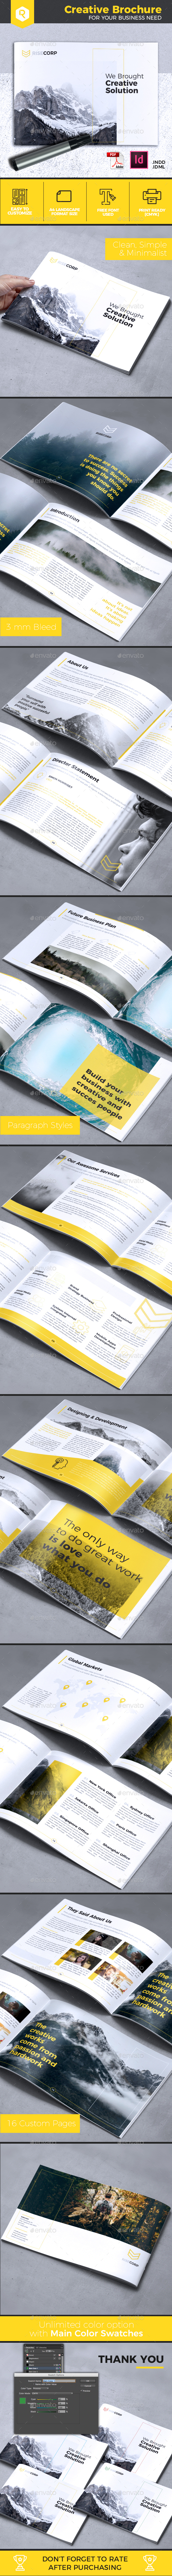 Creative Brochure Vol. 23 - A4 Landscape - Corporate Brochures